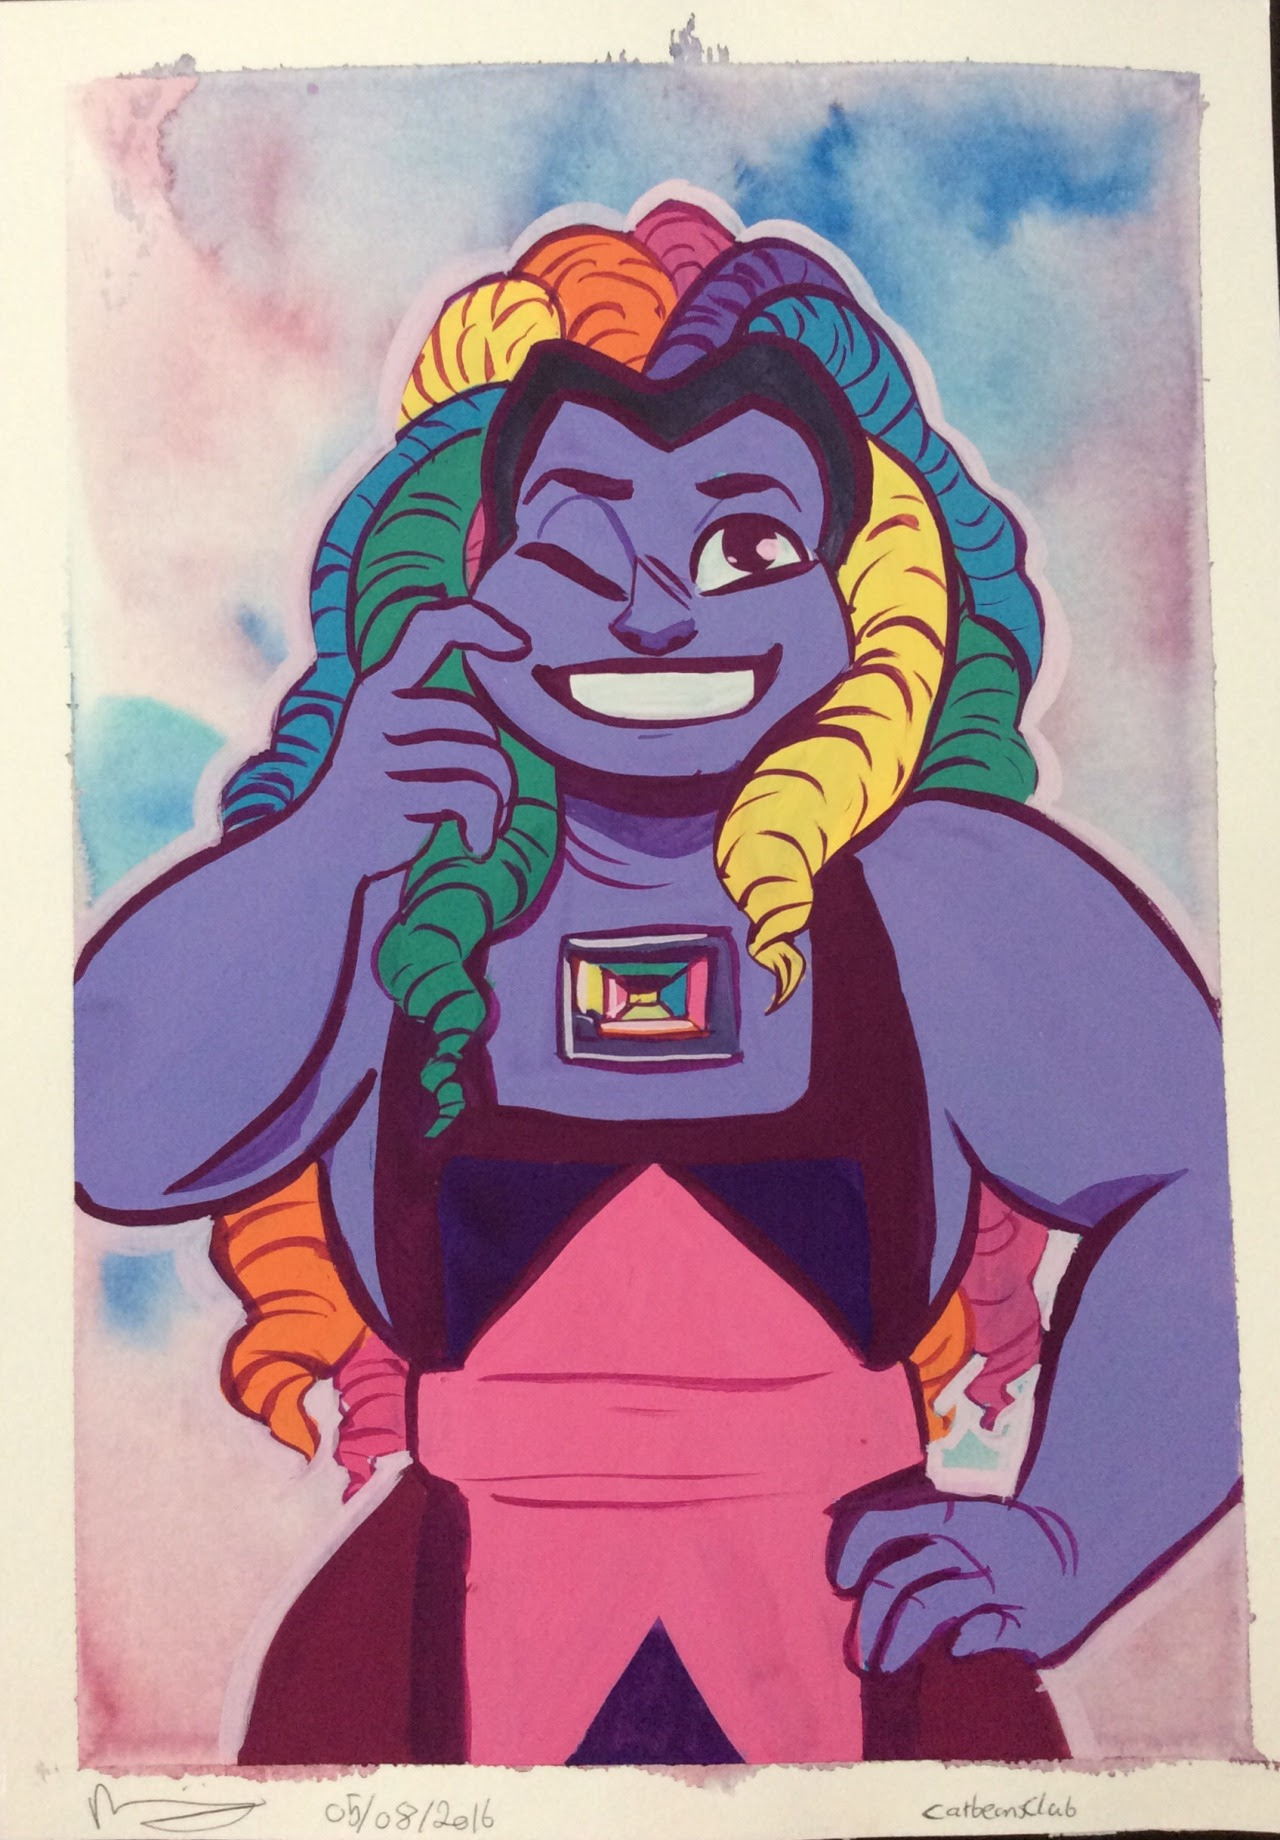 She means bismuth Background is watercolour, Rest is gouache. Painted on watercolour paper (hot pressed/smooth) 8.5x12 inches (21x29.2 cm) roughly A4 size Another painting that I may consider making...